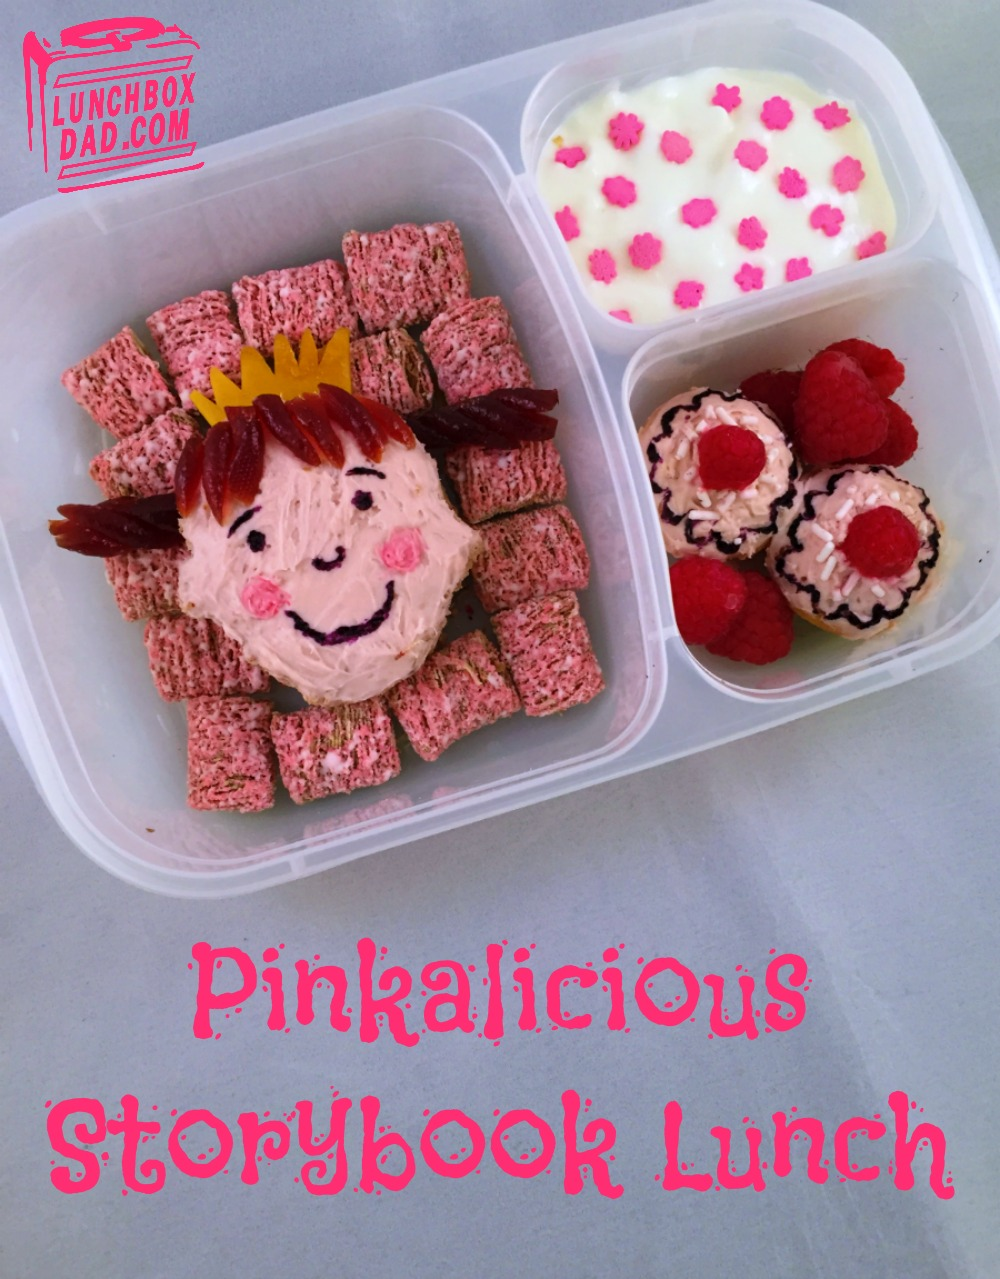 Pinkalicious book lunch